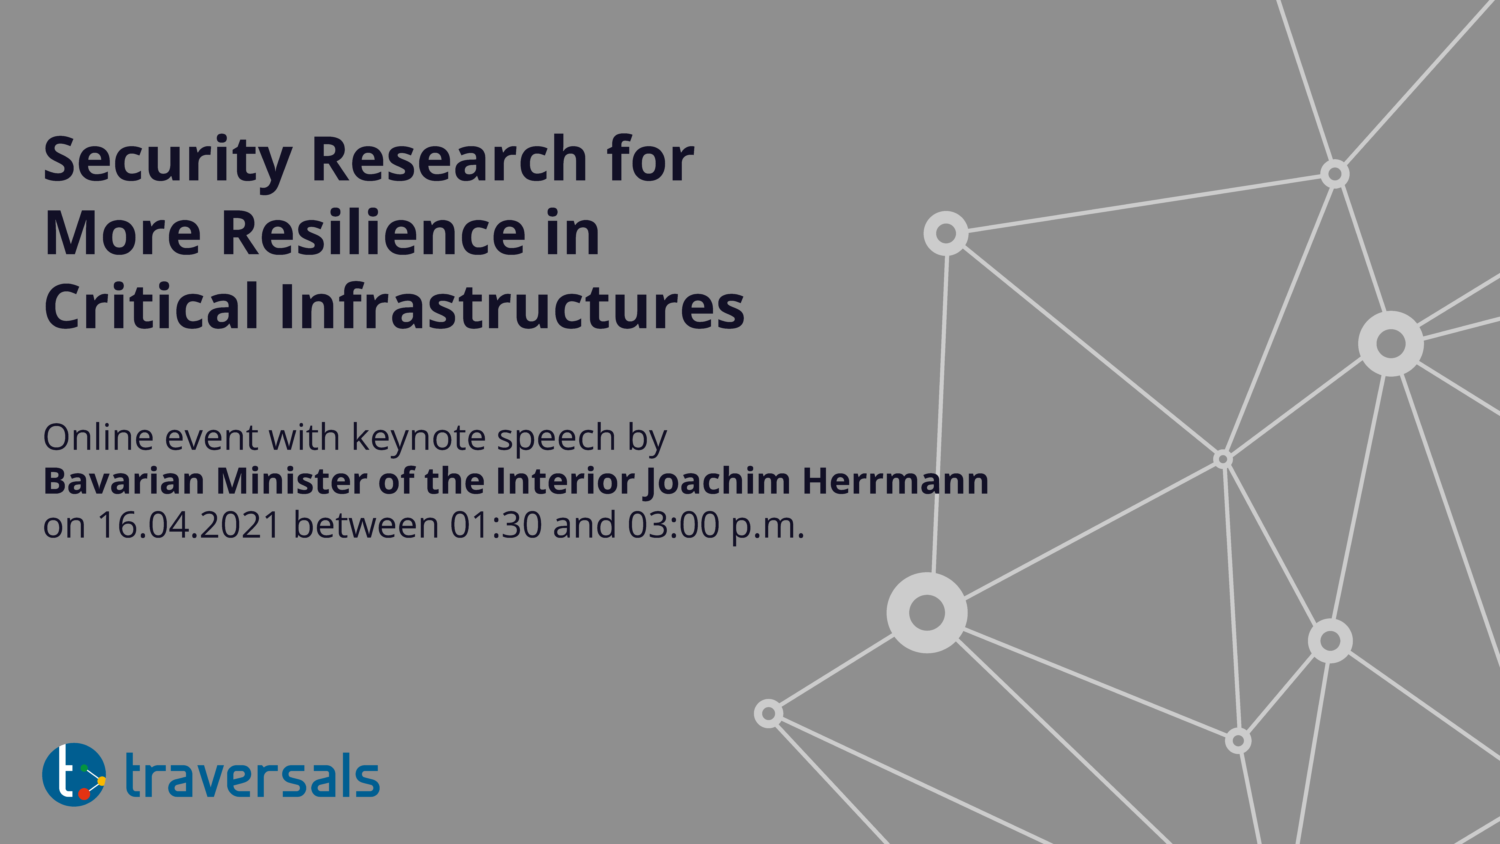 Security Research for More Resilience in Critical Infrastructures